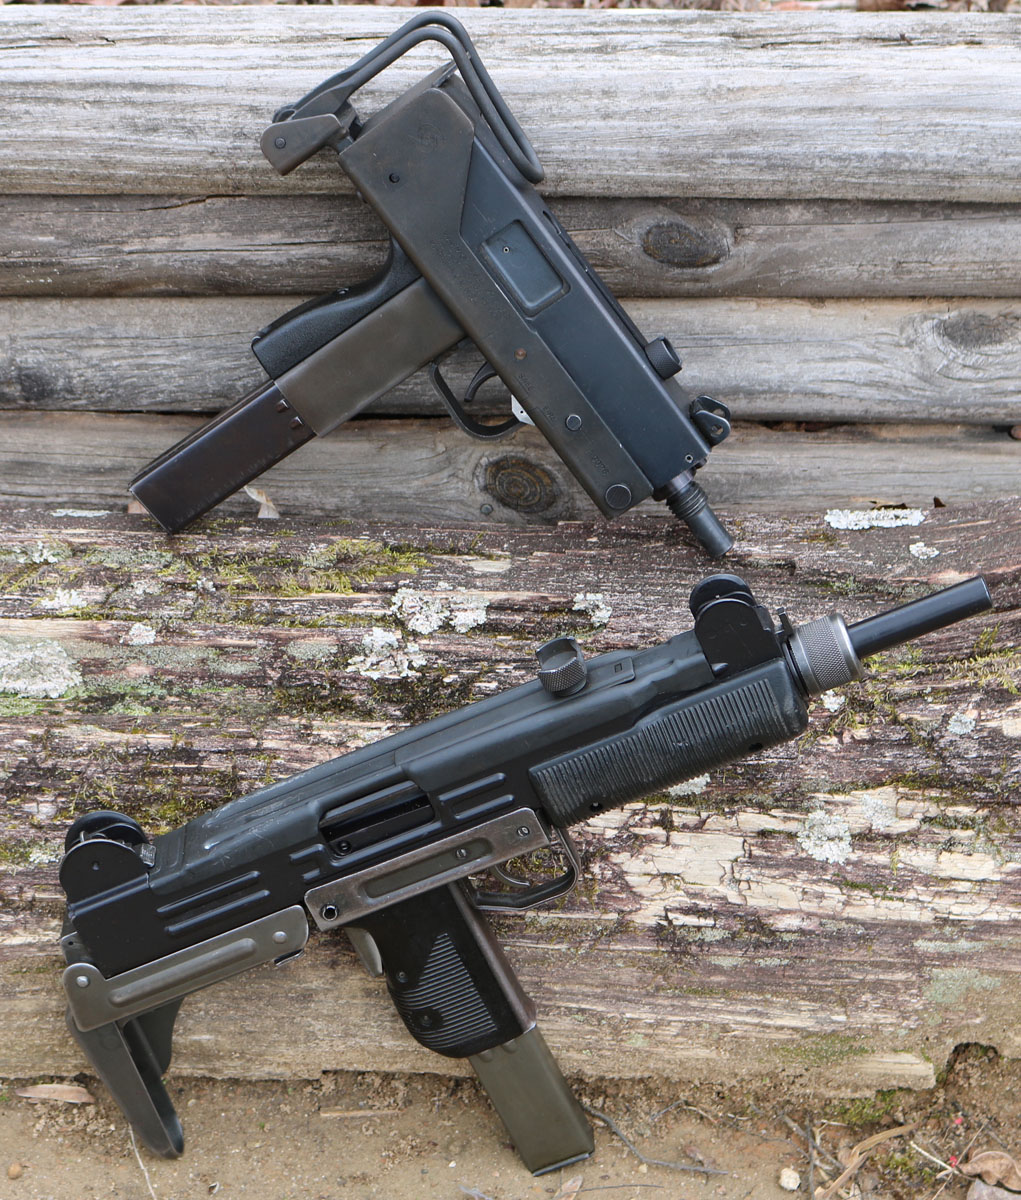 Stamped Steel Sputterguns - Uzi vs the MAC10 - GunsAmerica